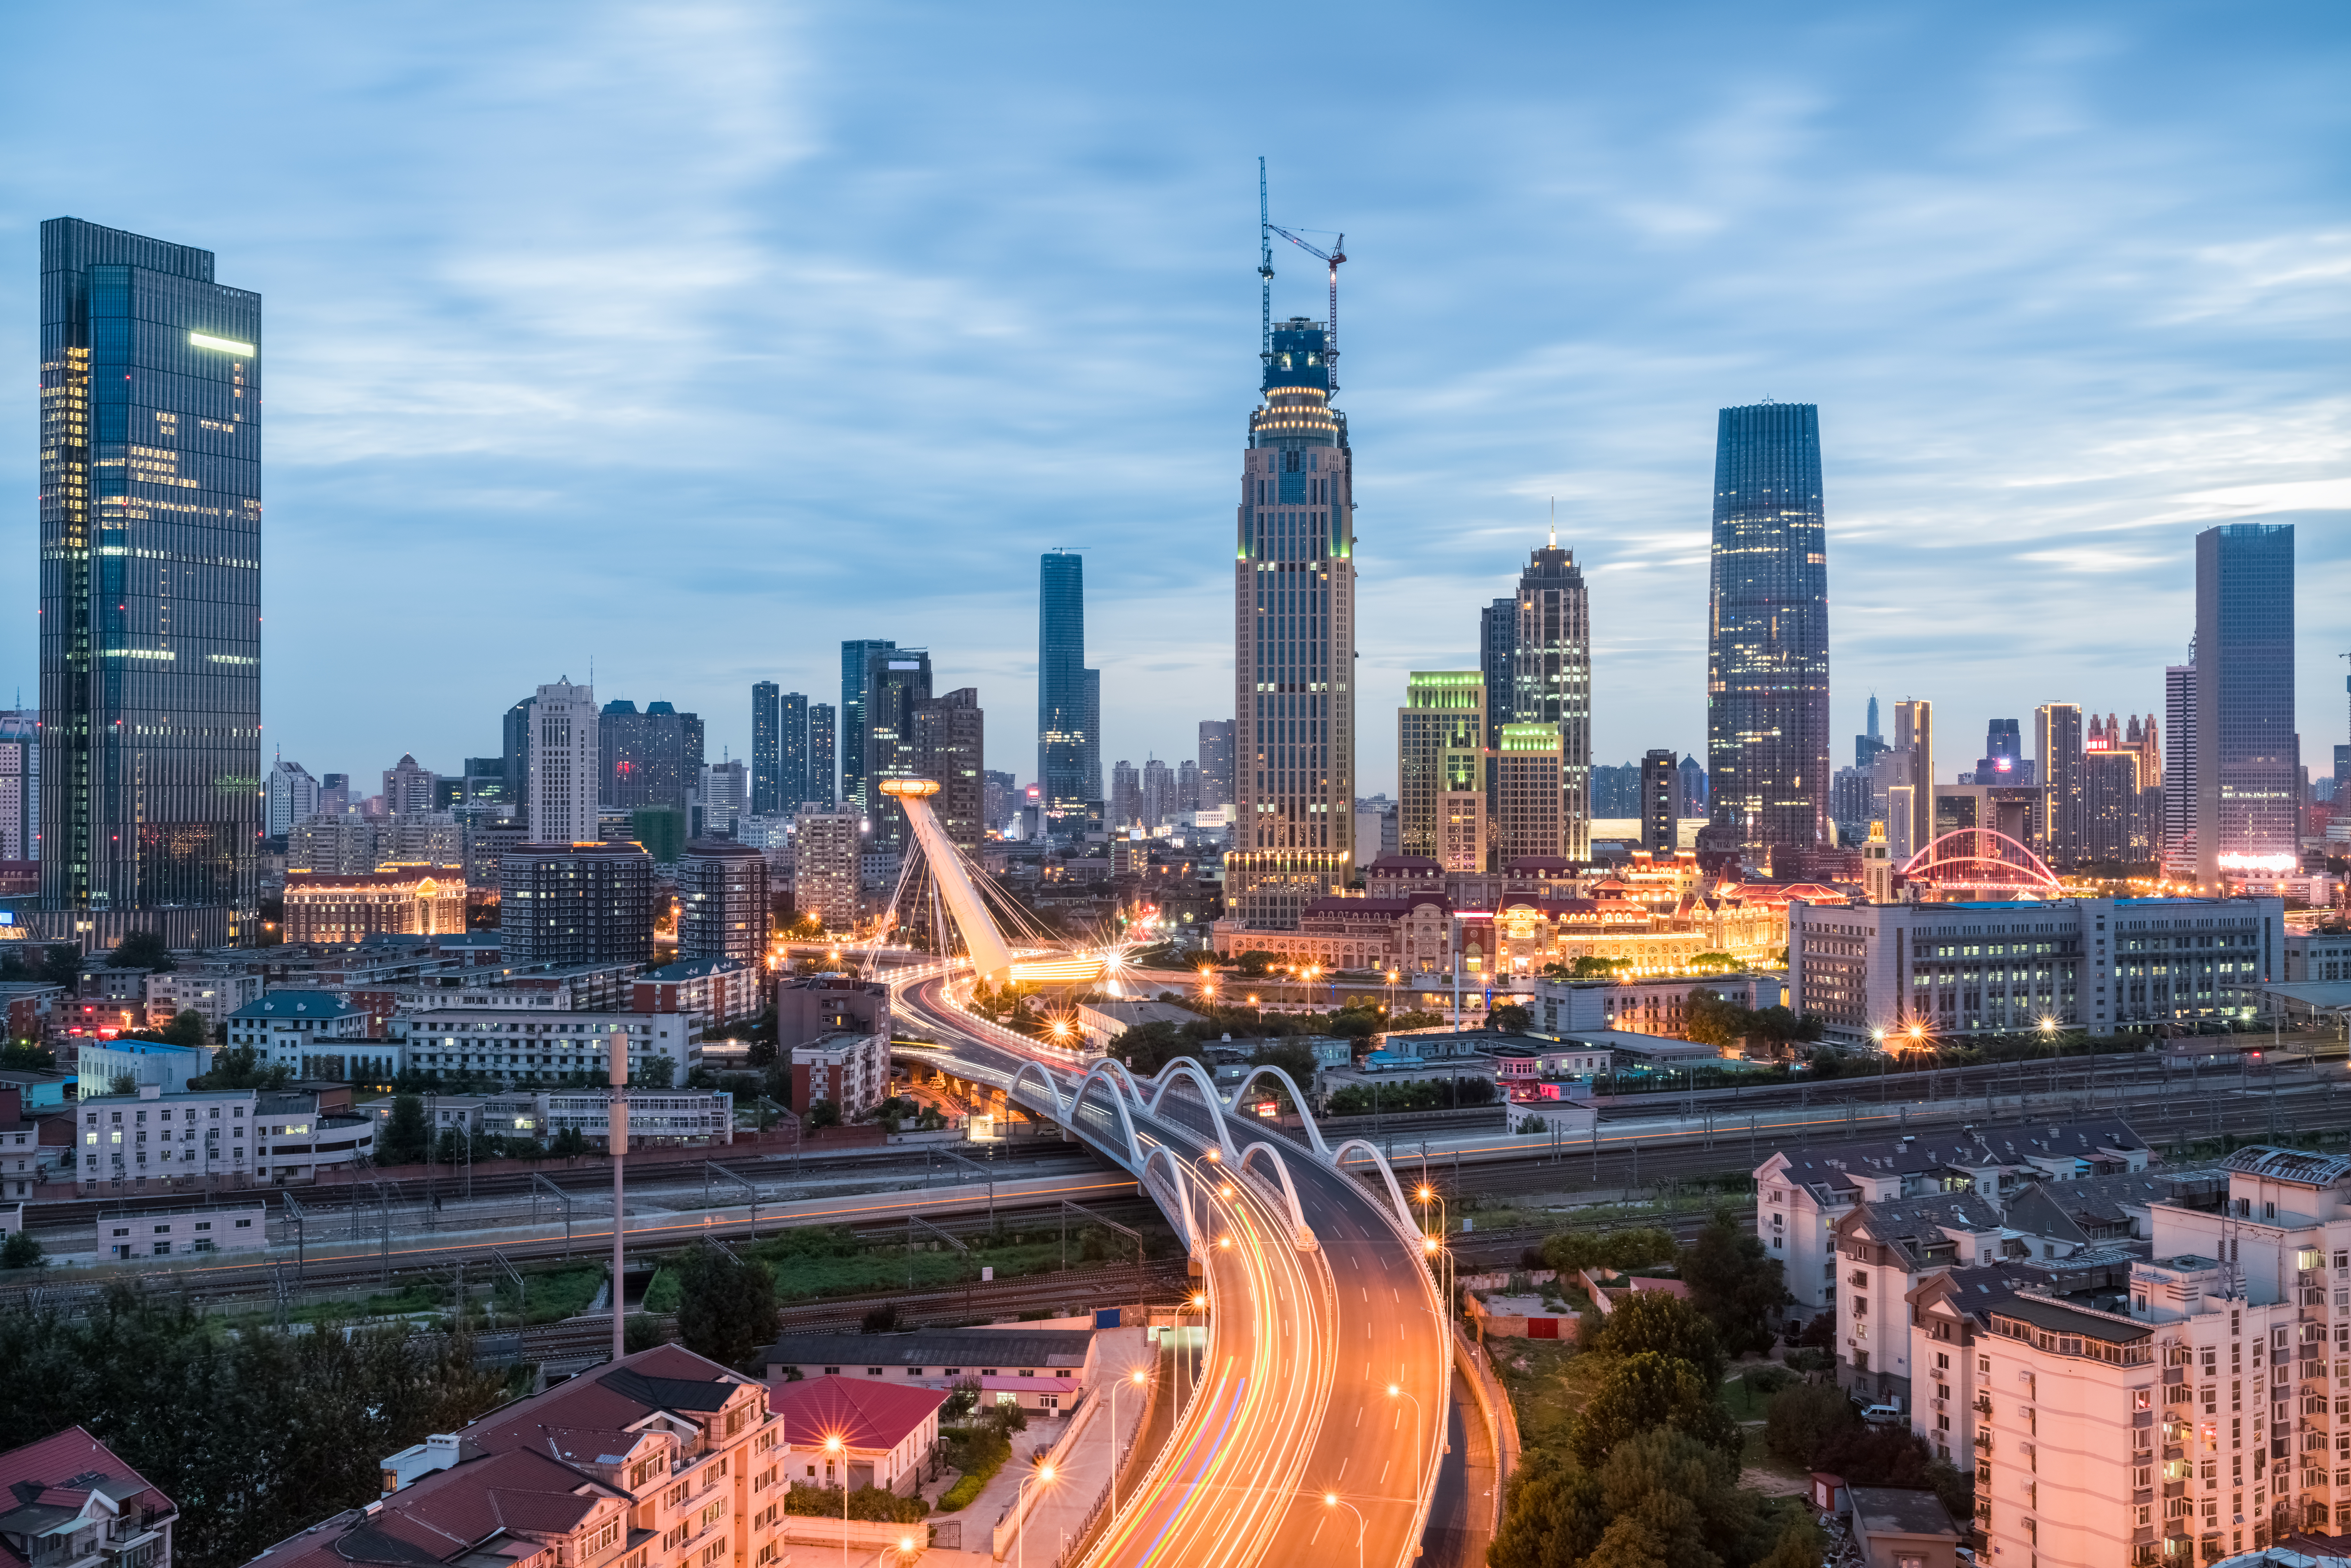 Tianjin will become a Smart City